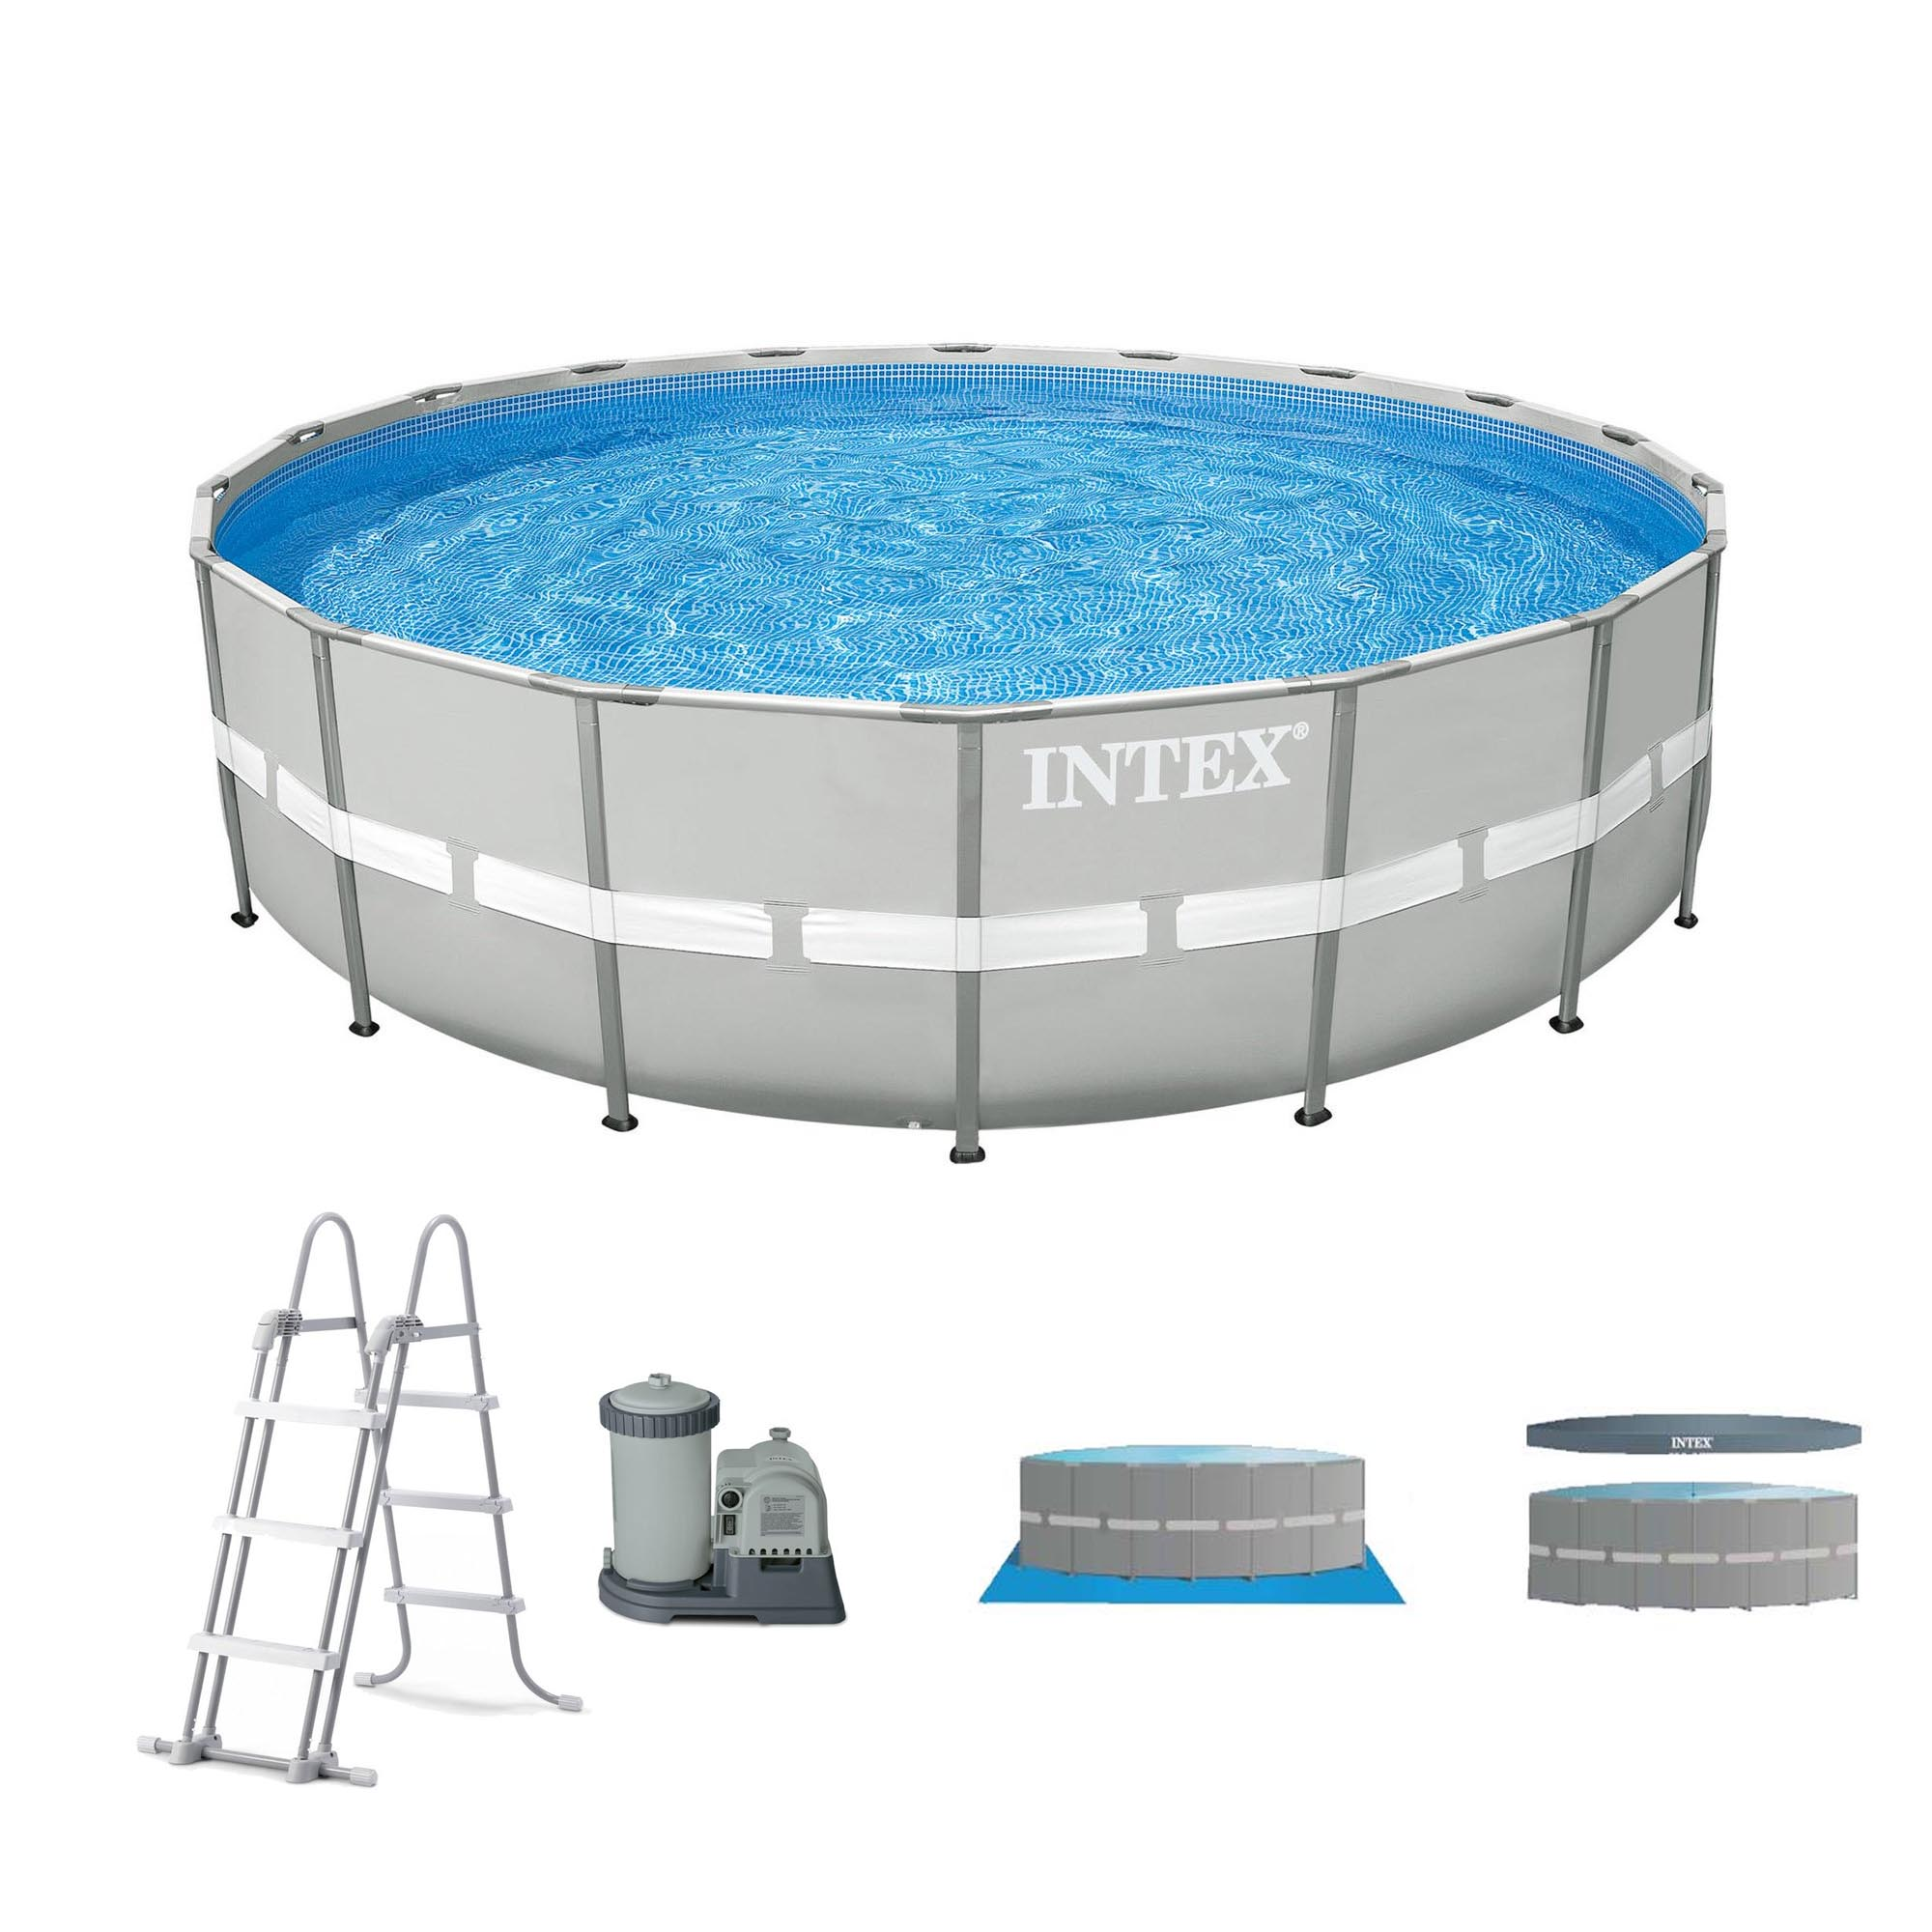 Intex 20 39 X 48 Ultra Frame Above Ground Swimming Pool Set W Pump And Ladder 78257263035 Ebay